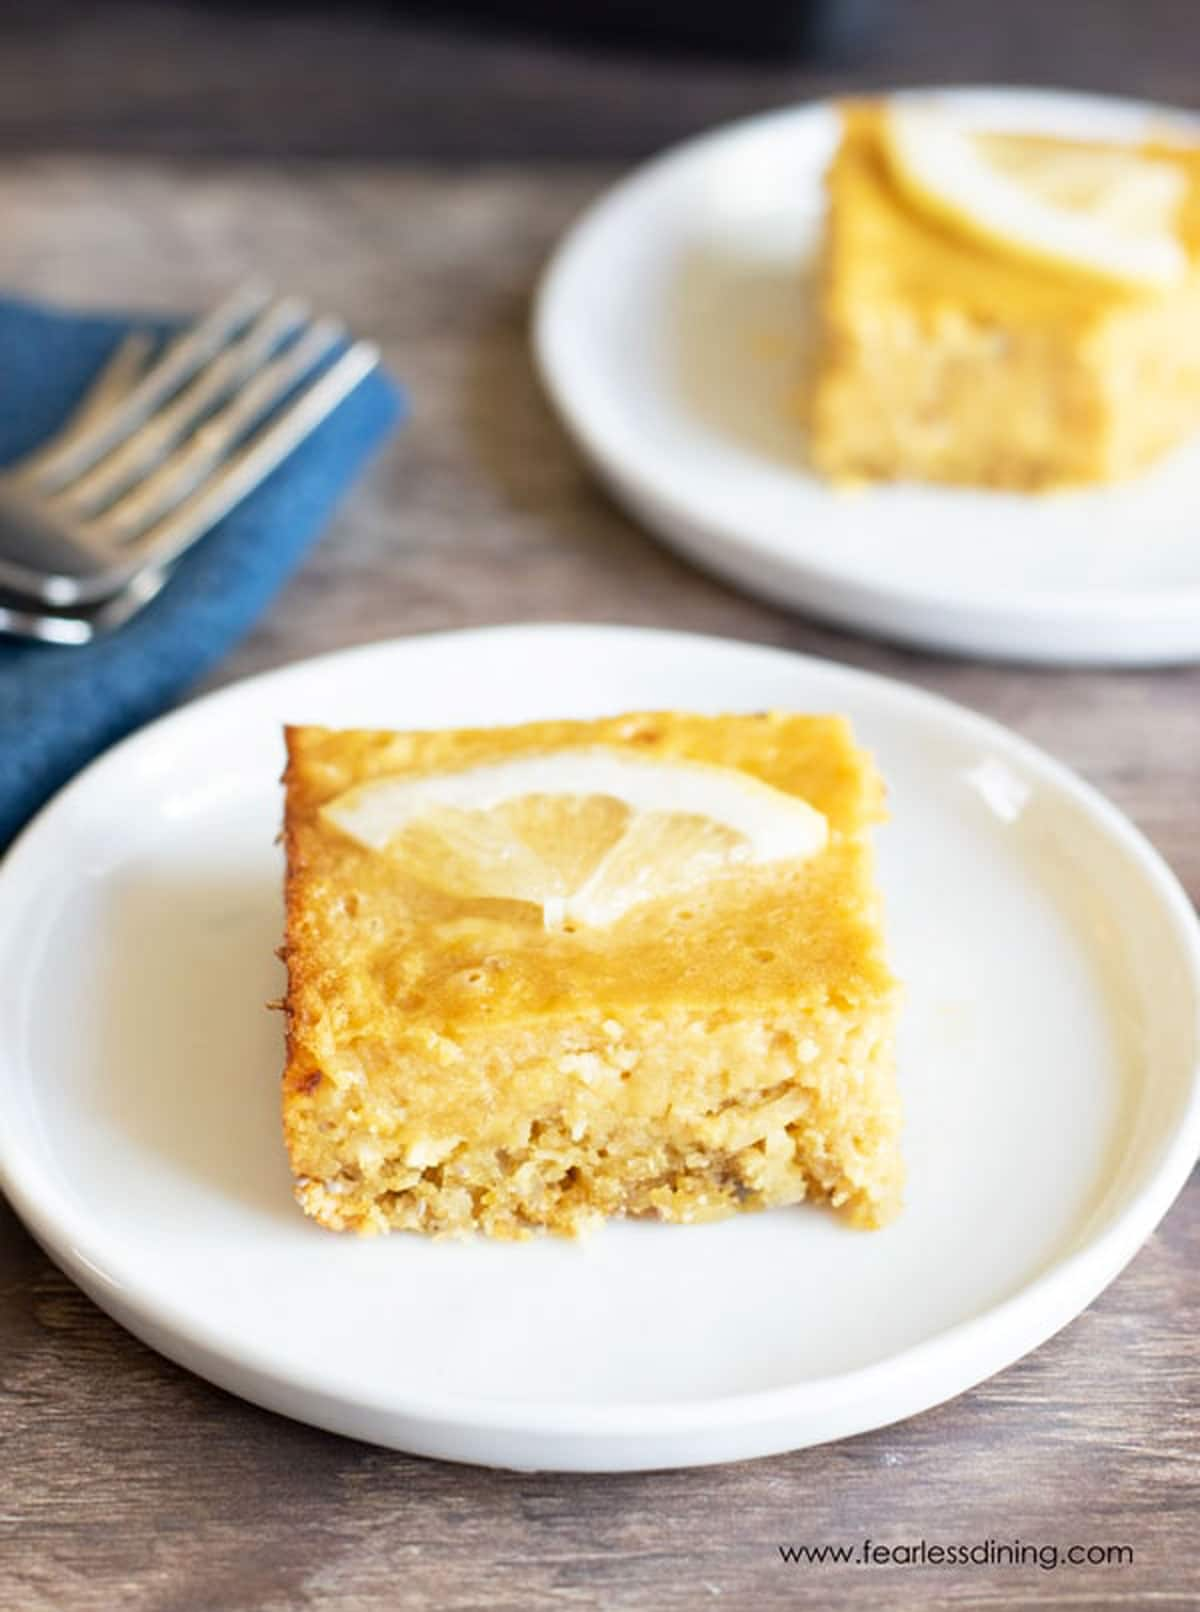 a close up picture of the lemon bar on a plate